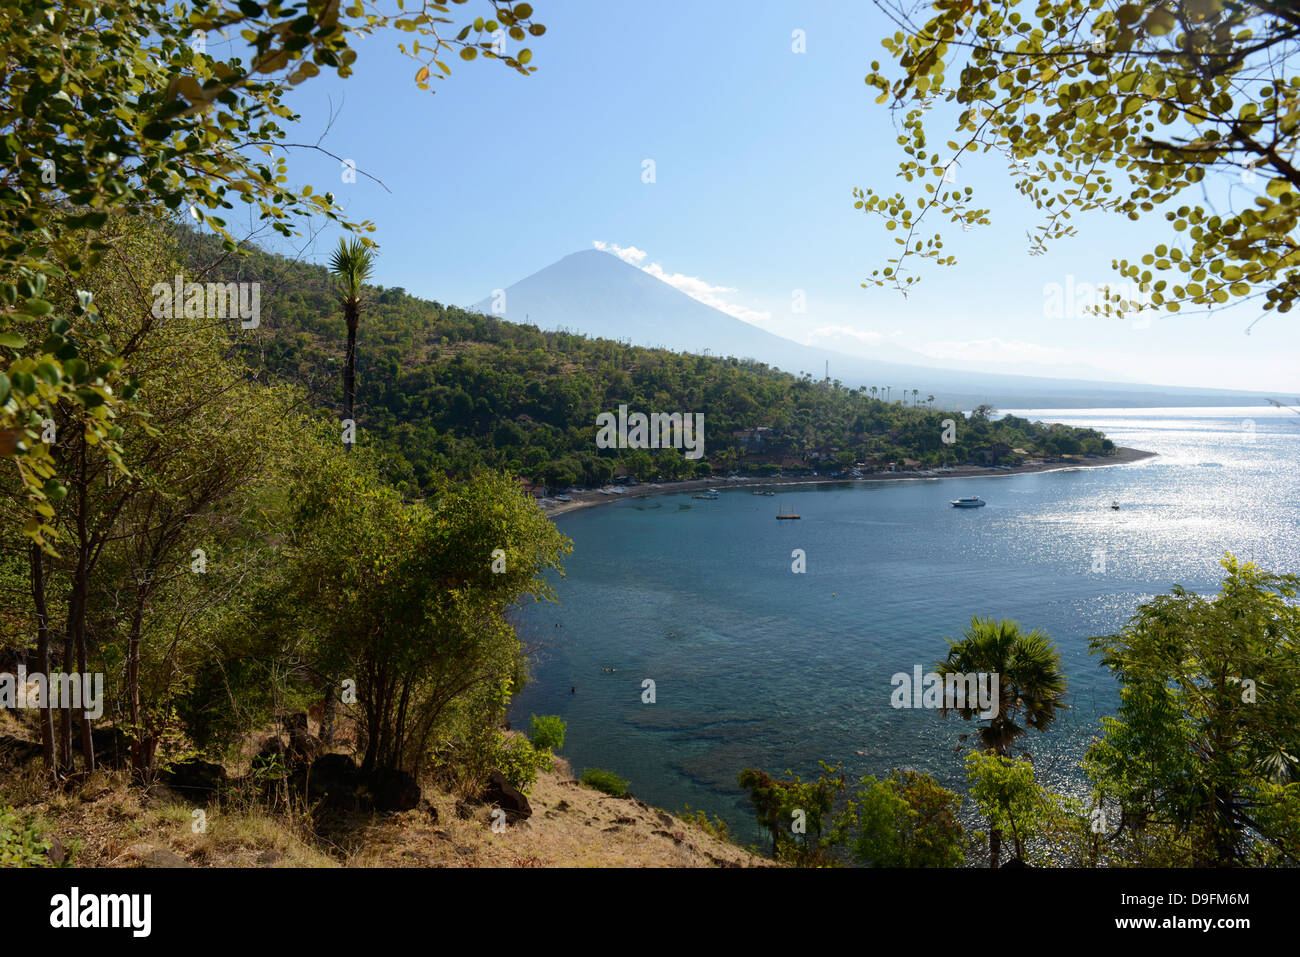 Amed, view of the coast and volcano of Gunung Agung, Bali, Indonesia, Southeast Asia - Stock Image